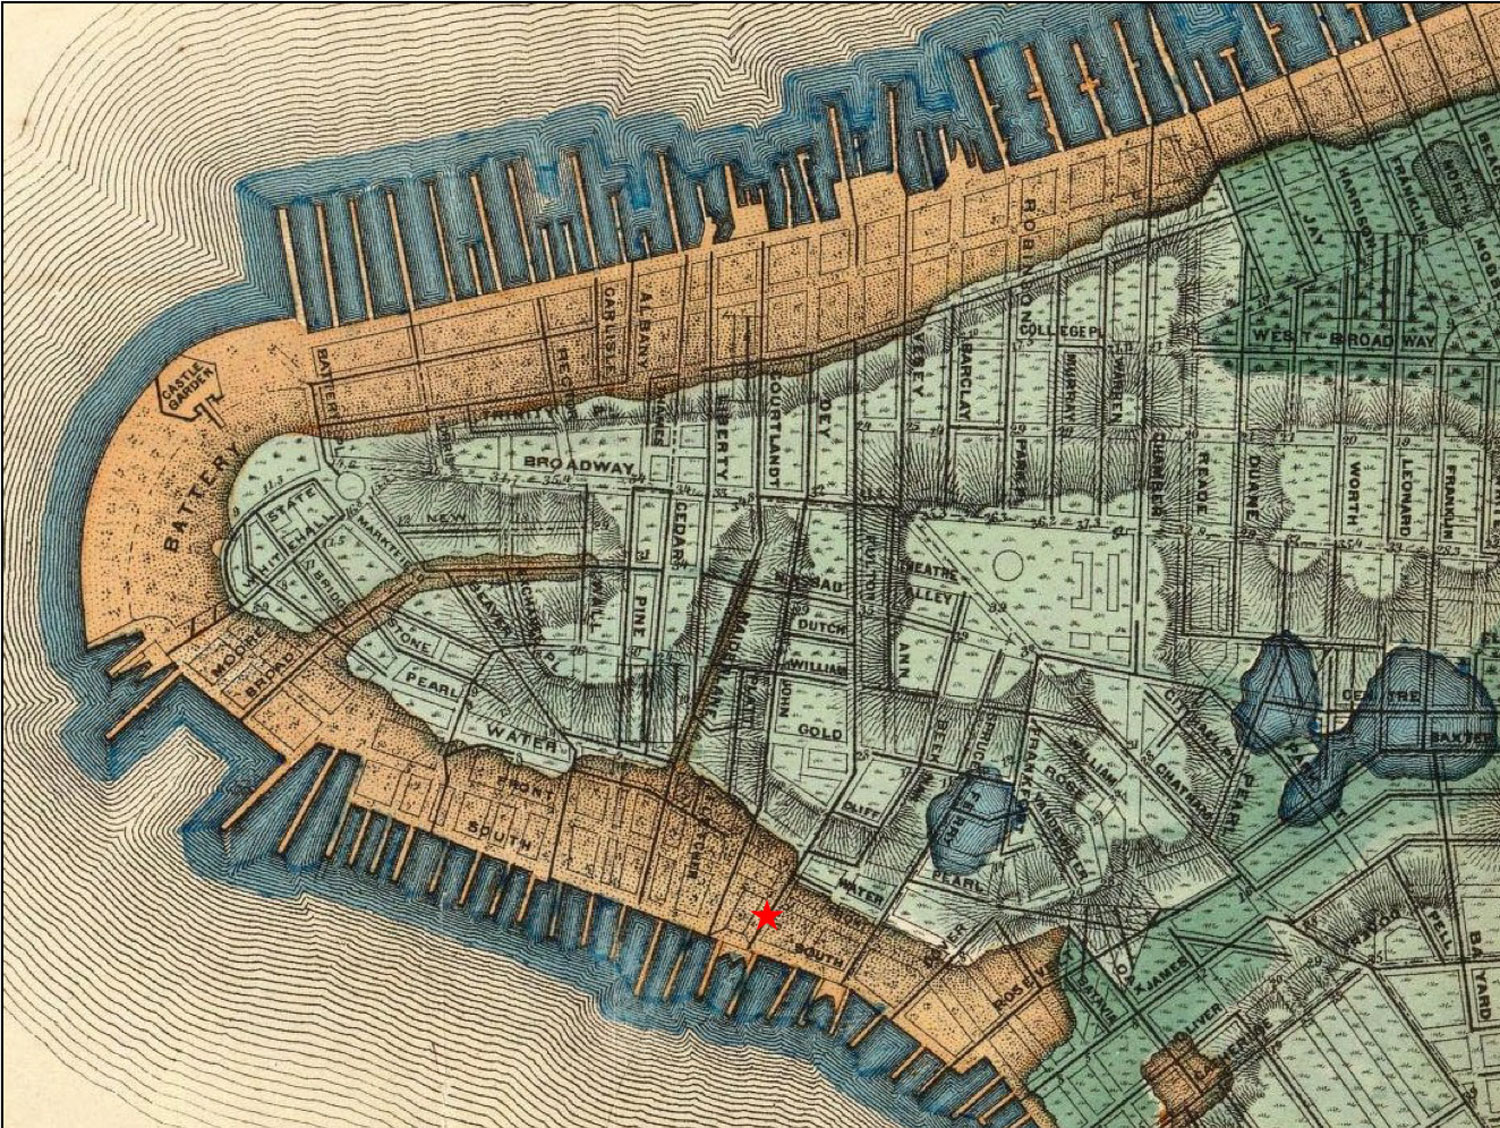 Archaeological Discovery at Burling Slip : NYC Parks